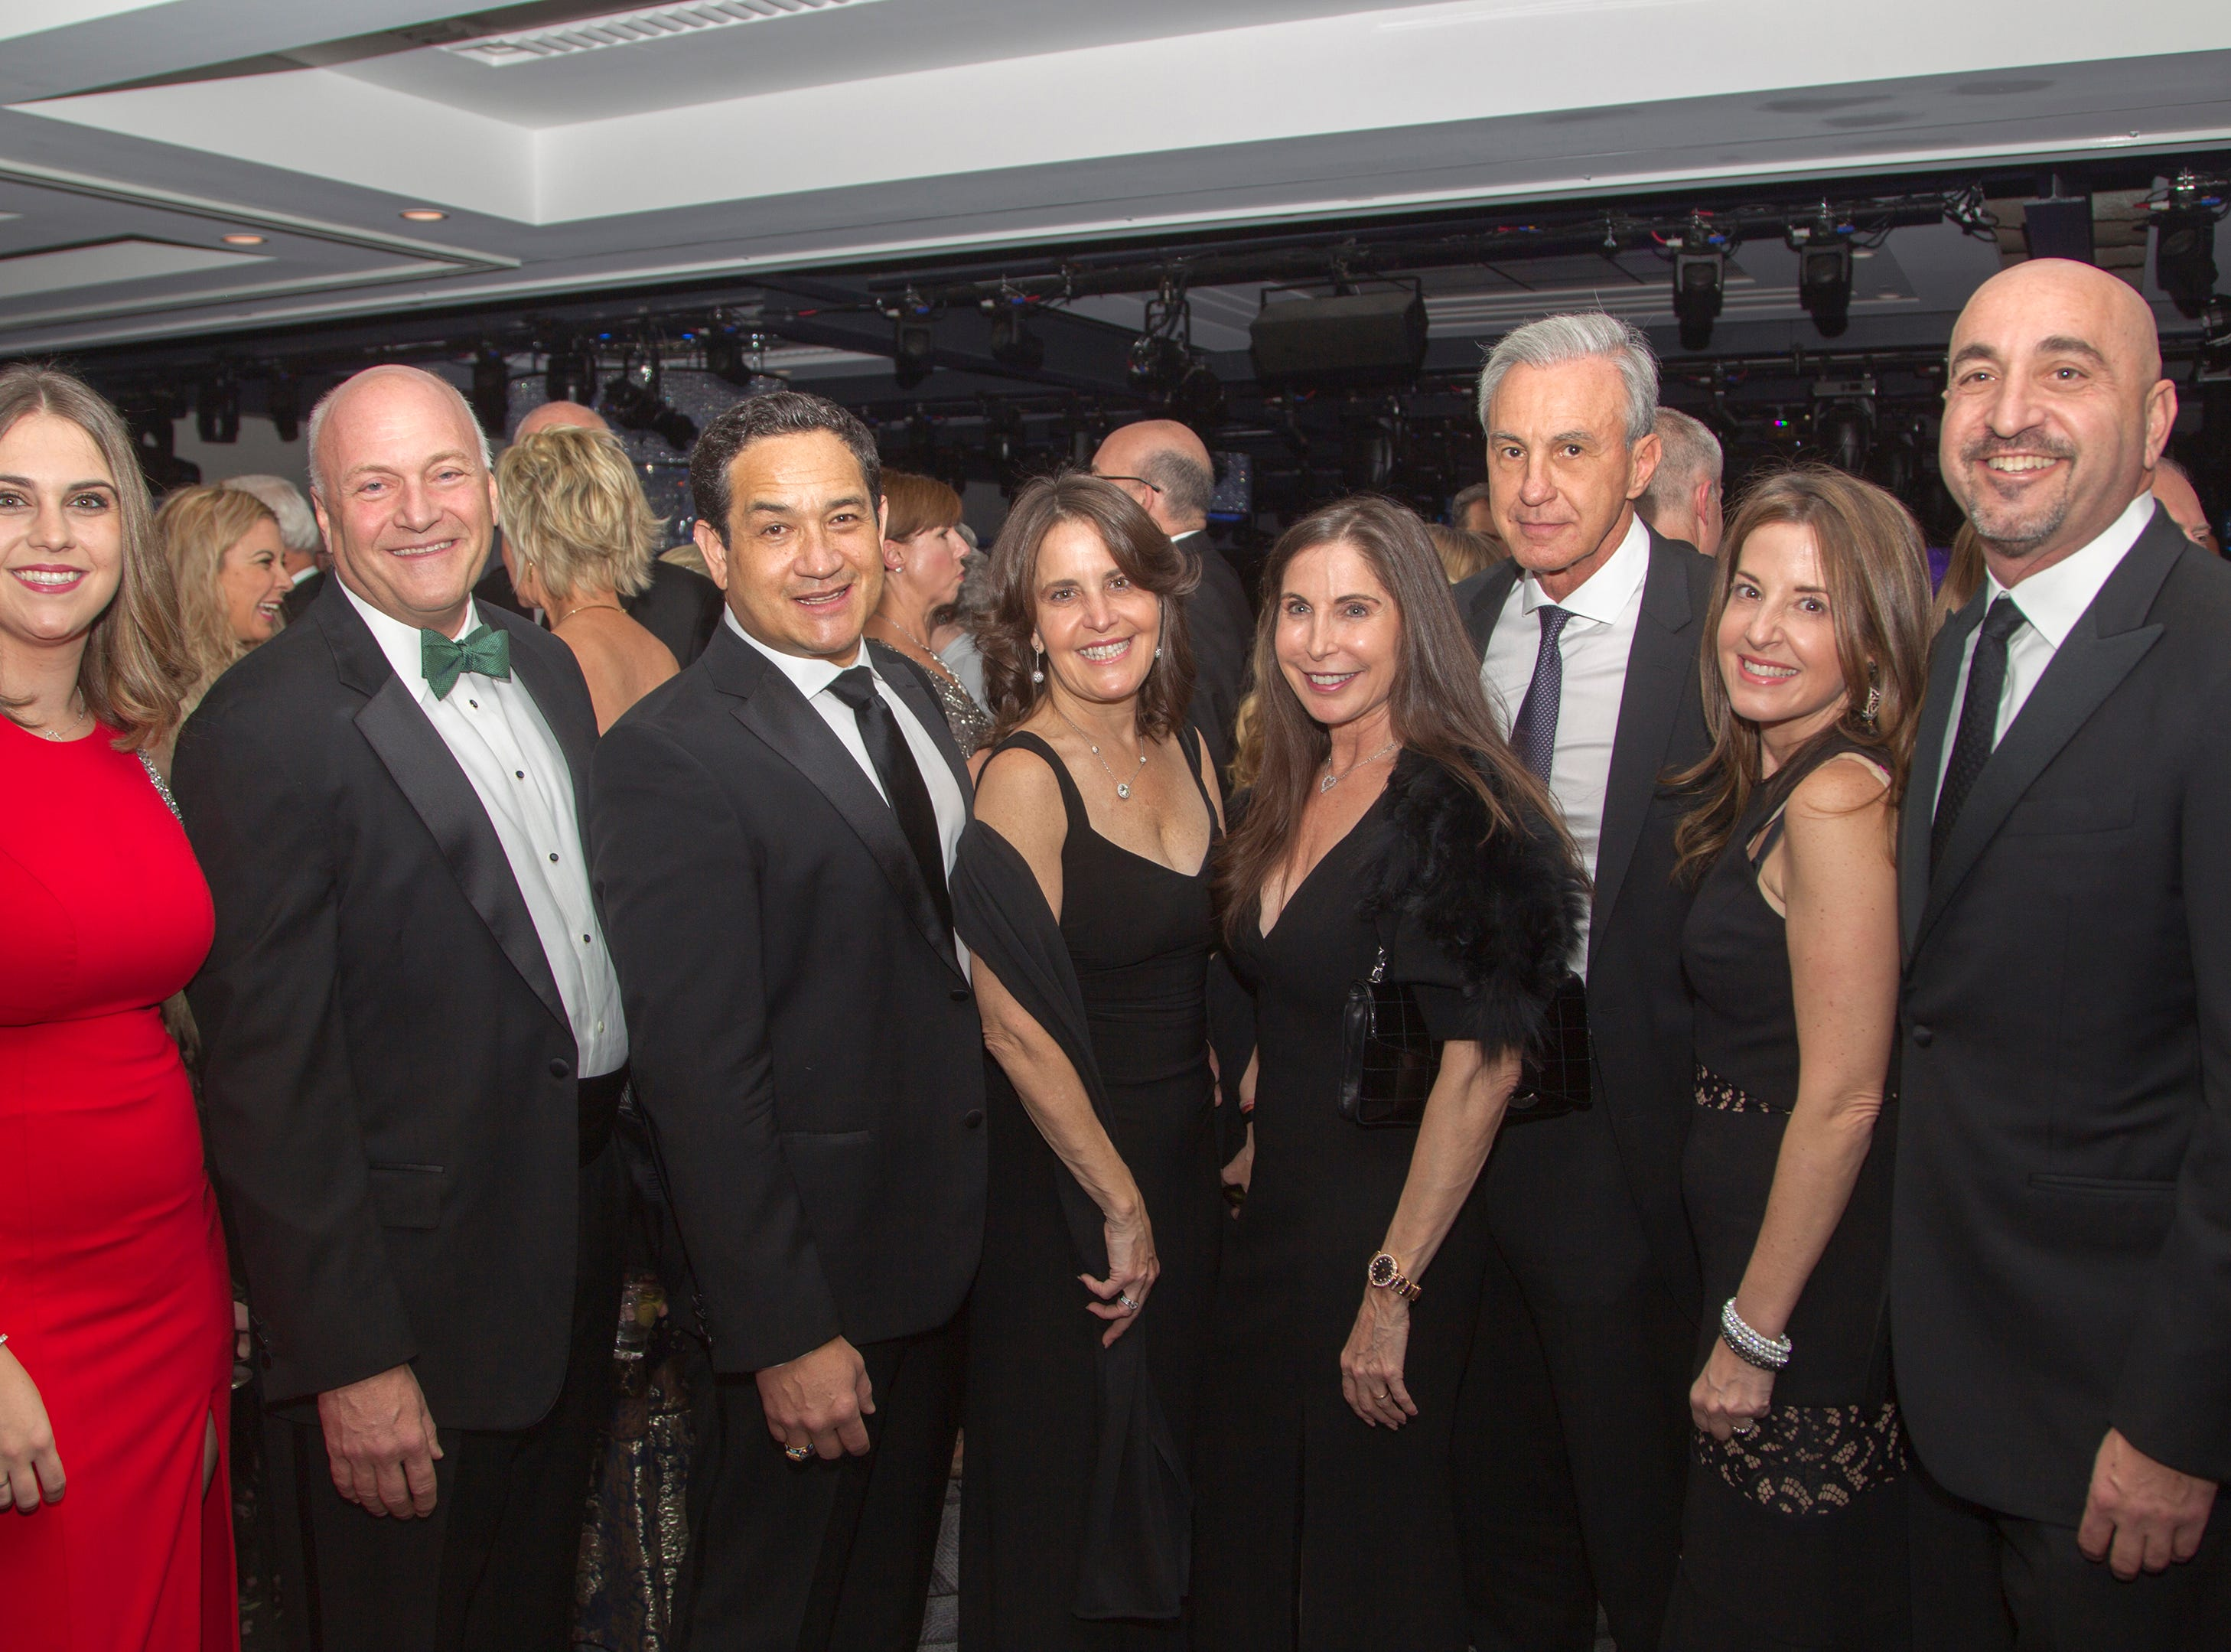 Courtney McVicar, Michael Maron, Gerino Casal, Maribel Unanue, Mimi Unanue, Jose Guggenheim, Marie Unanue, Andy Unanue. Holy Name Medical Center held its 2018 Founders Ball in NYC at Ziegfeld Ballroom. 11/17/2018